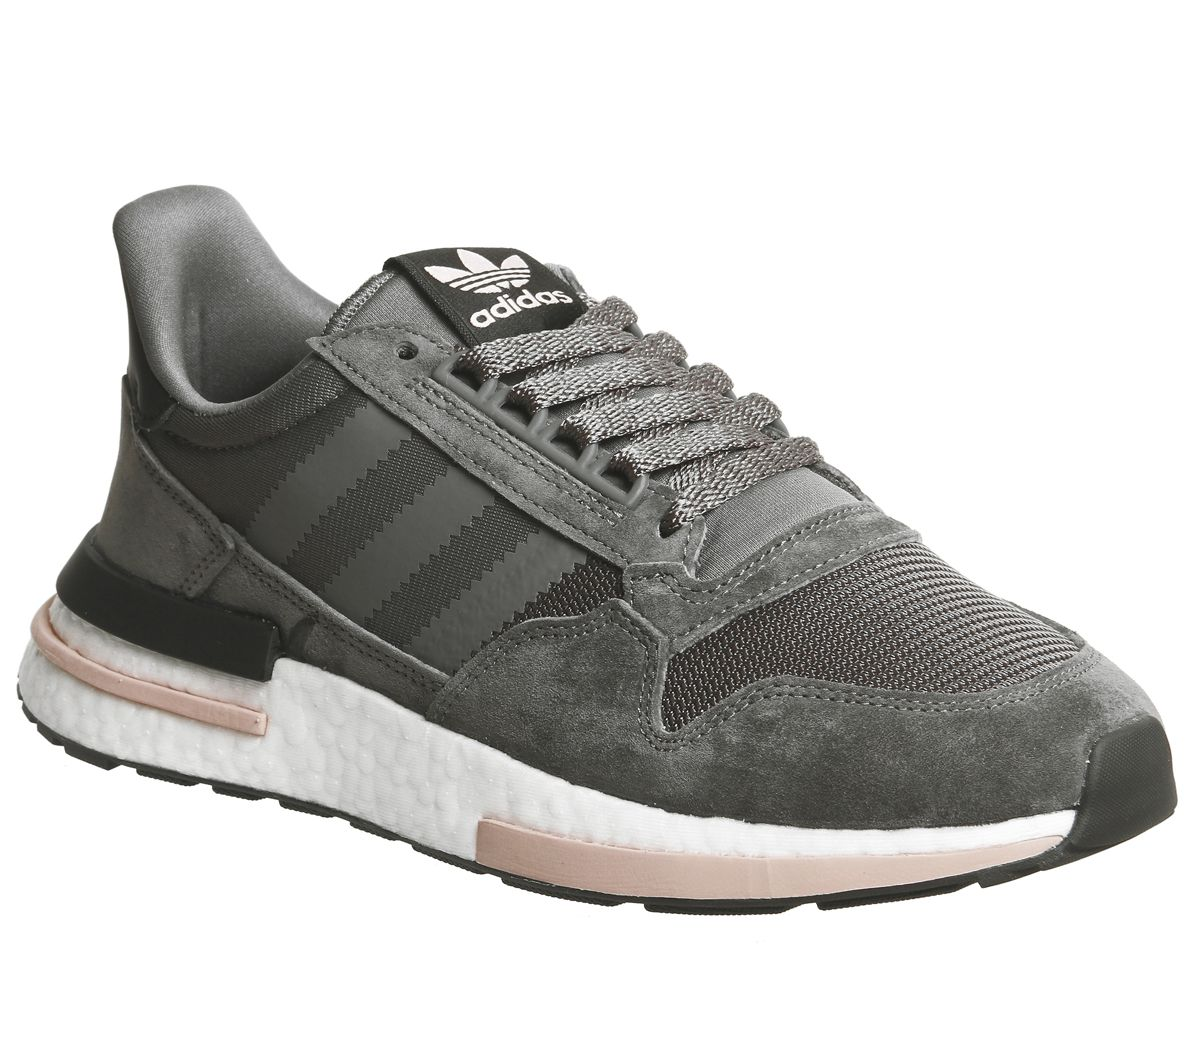 check out 70e1b 5c6aa Zx500 Rm Trainers